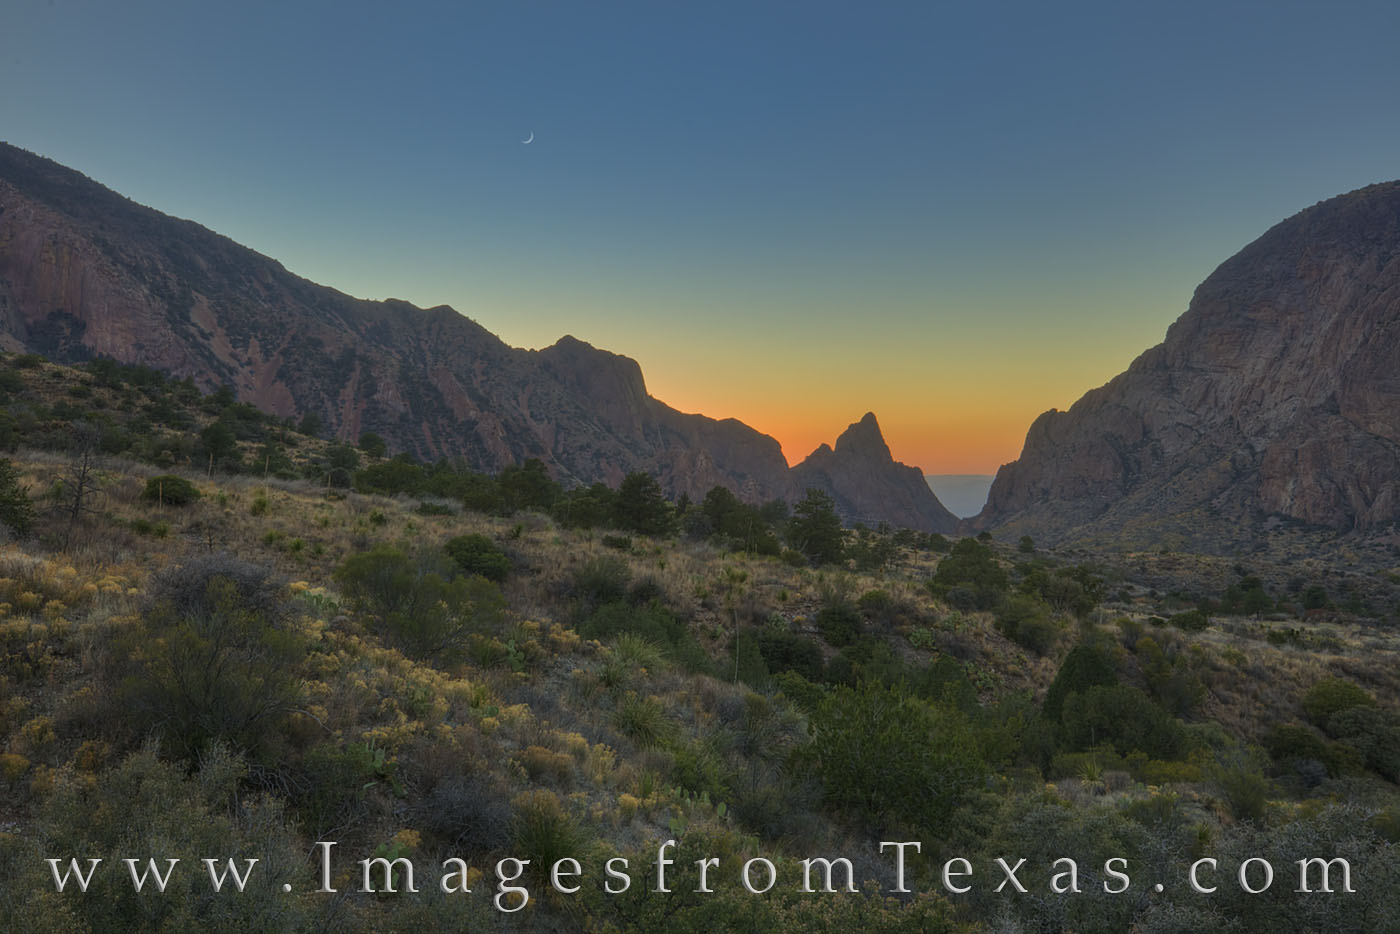 big bend, chisos lodge, chisos mountains, moon, crescent moon, chihuahuan desert, evening, national parks, landscapes, photo